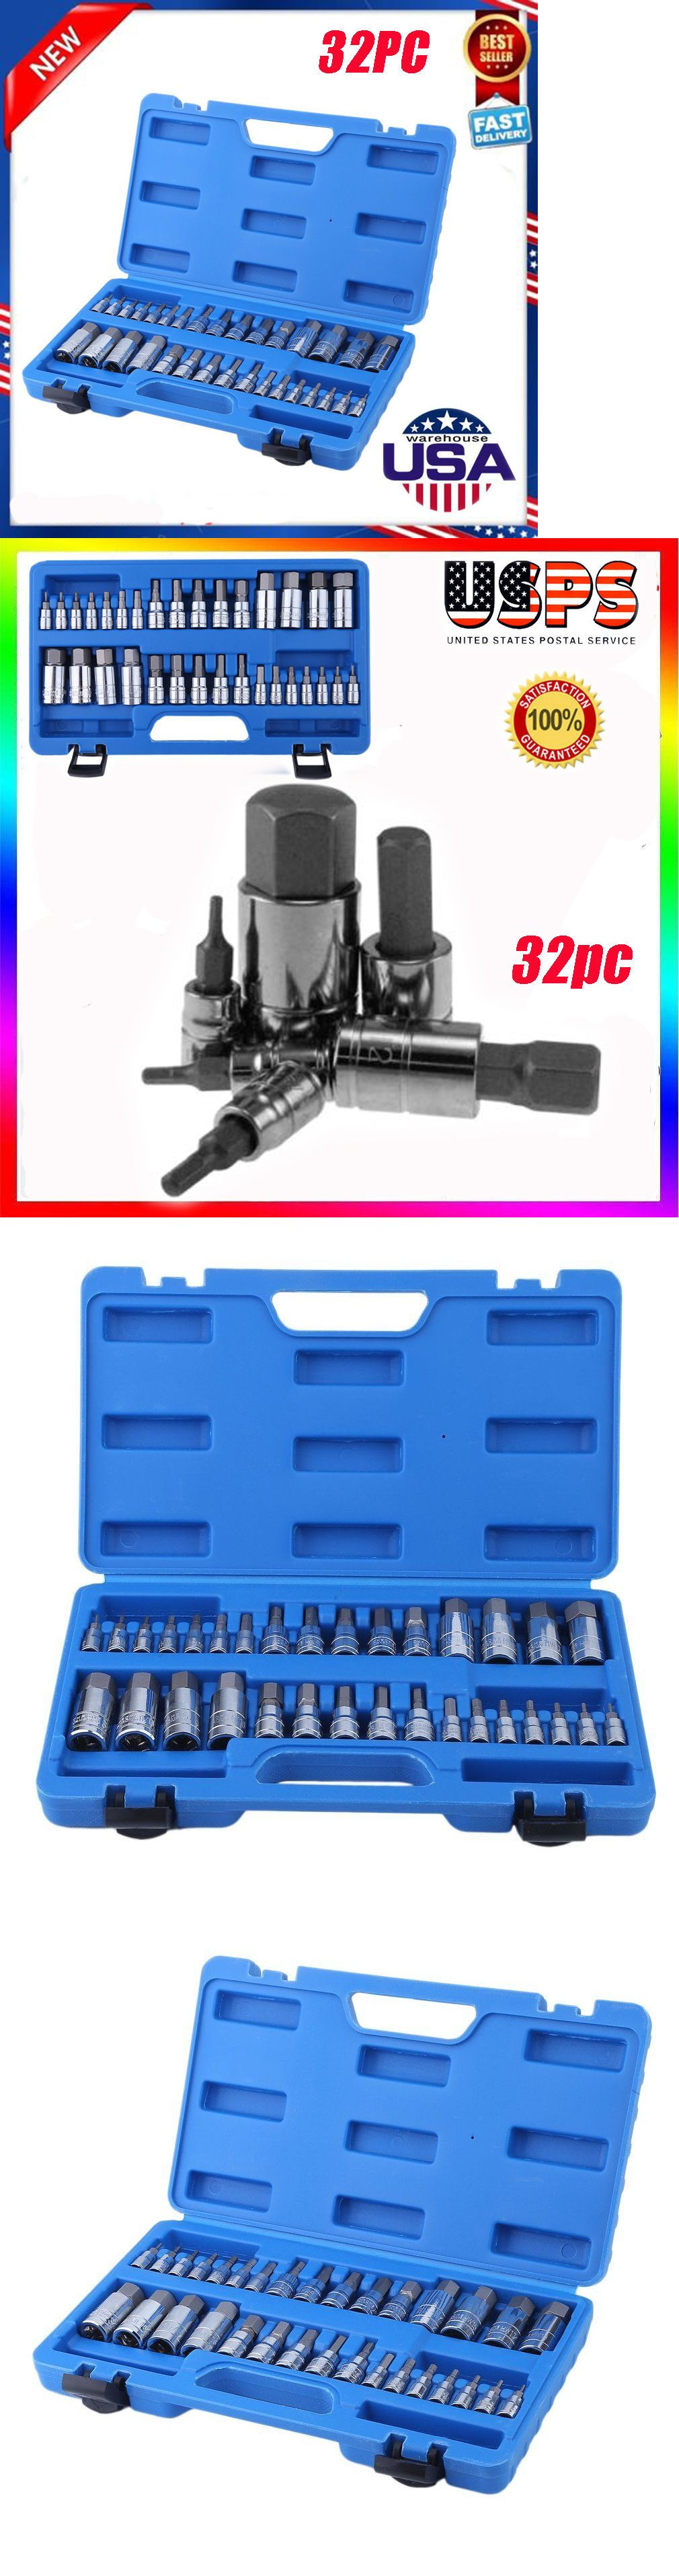 32pc Master Hex Bit Set SAE and Metric Socket Set Standard Allen 1//4 3//8 1//2 inch